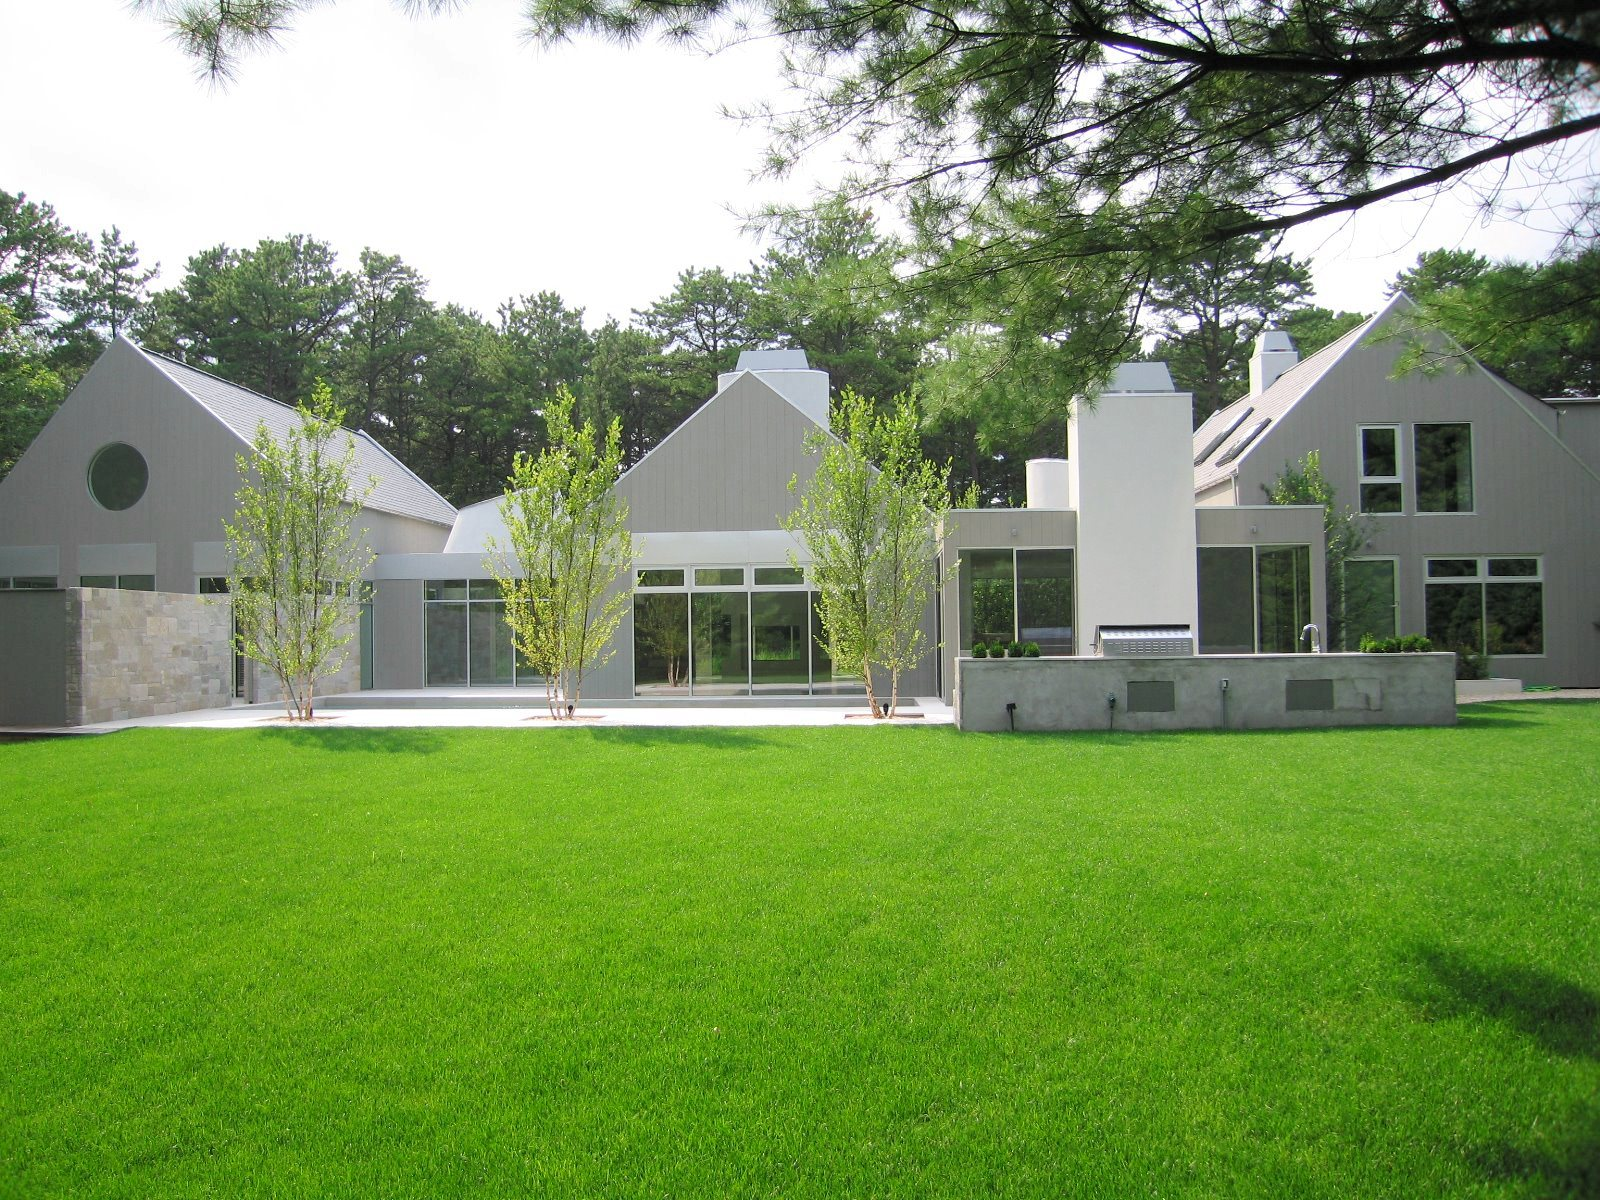 Exterior Landscaping: SEE THIS HOUSE: WHITE ON WHITE IN A MODERN HAMPTONS